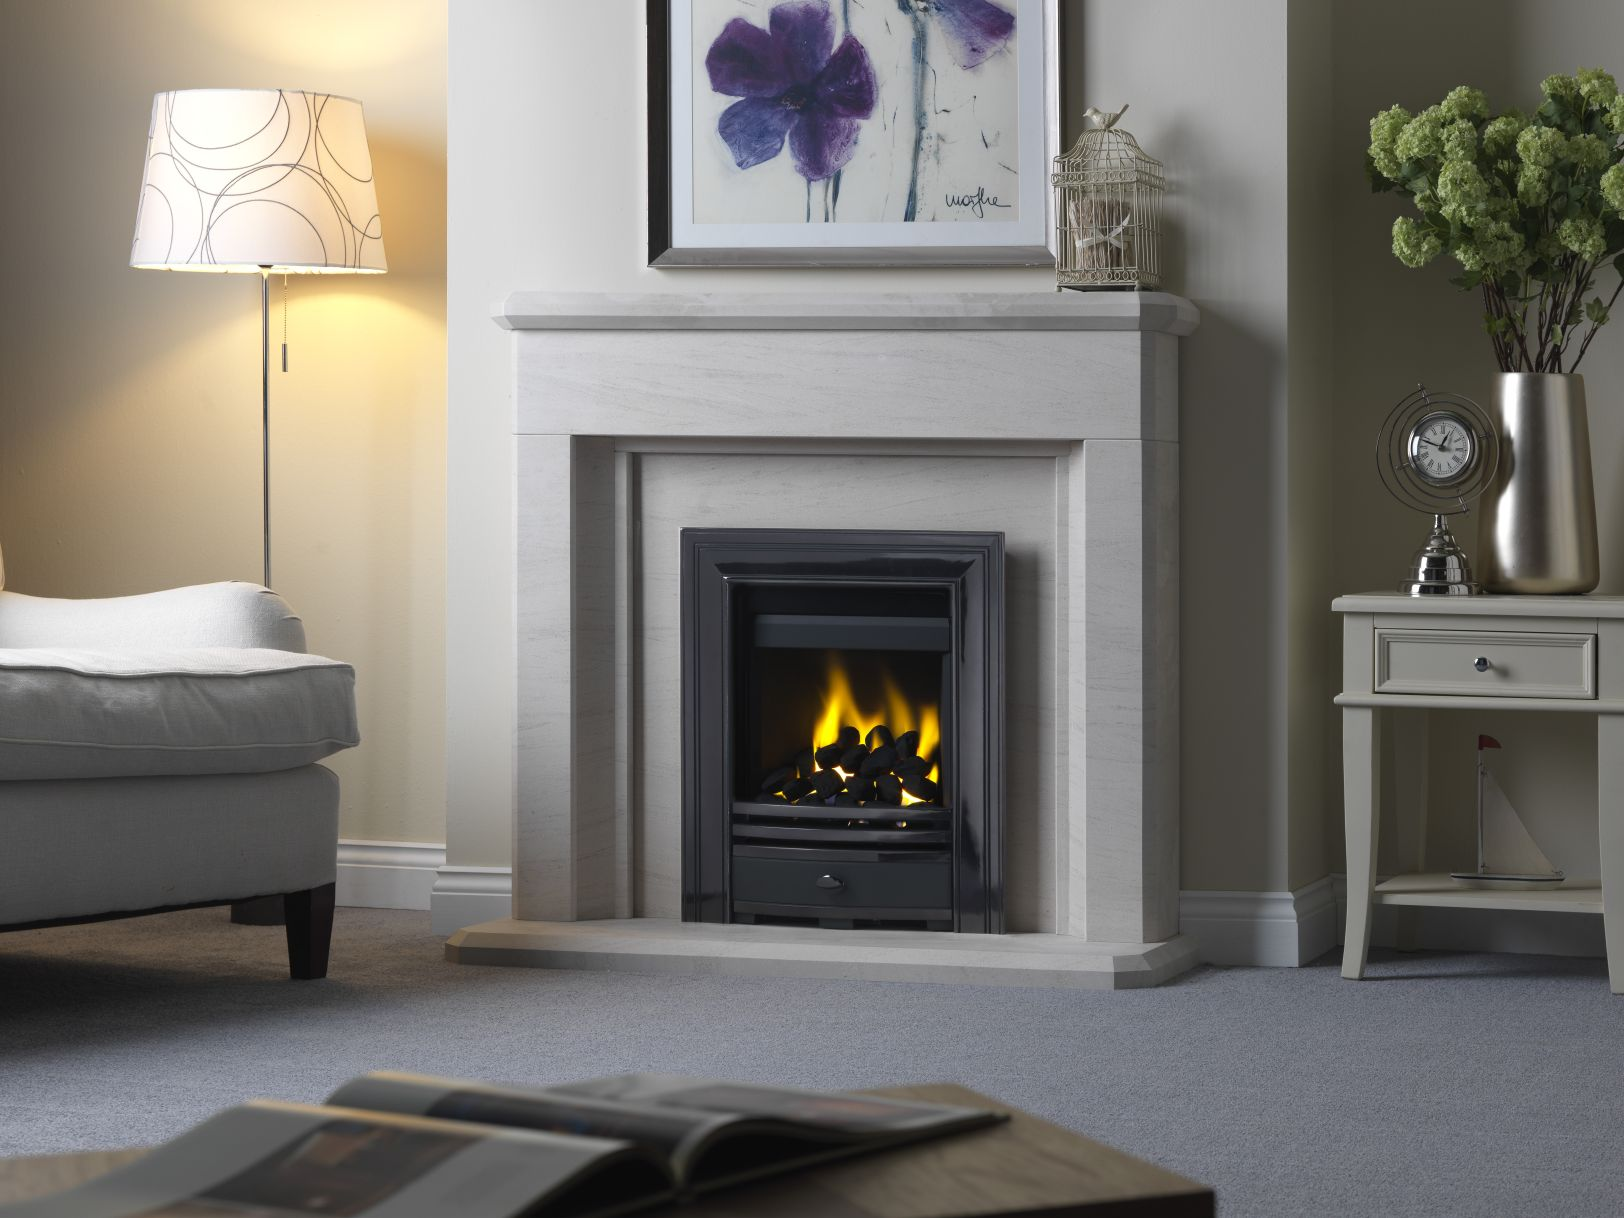 Paragon Inset Gas Fire with Cast Front, in Limestone Fireplace